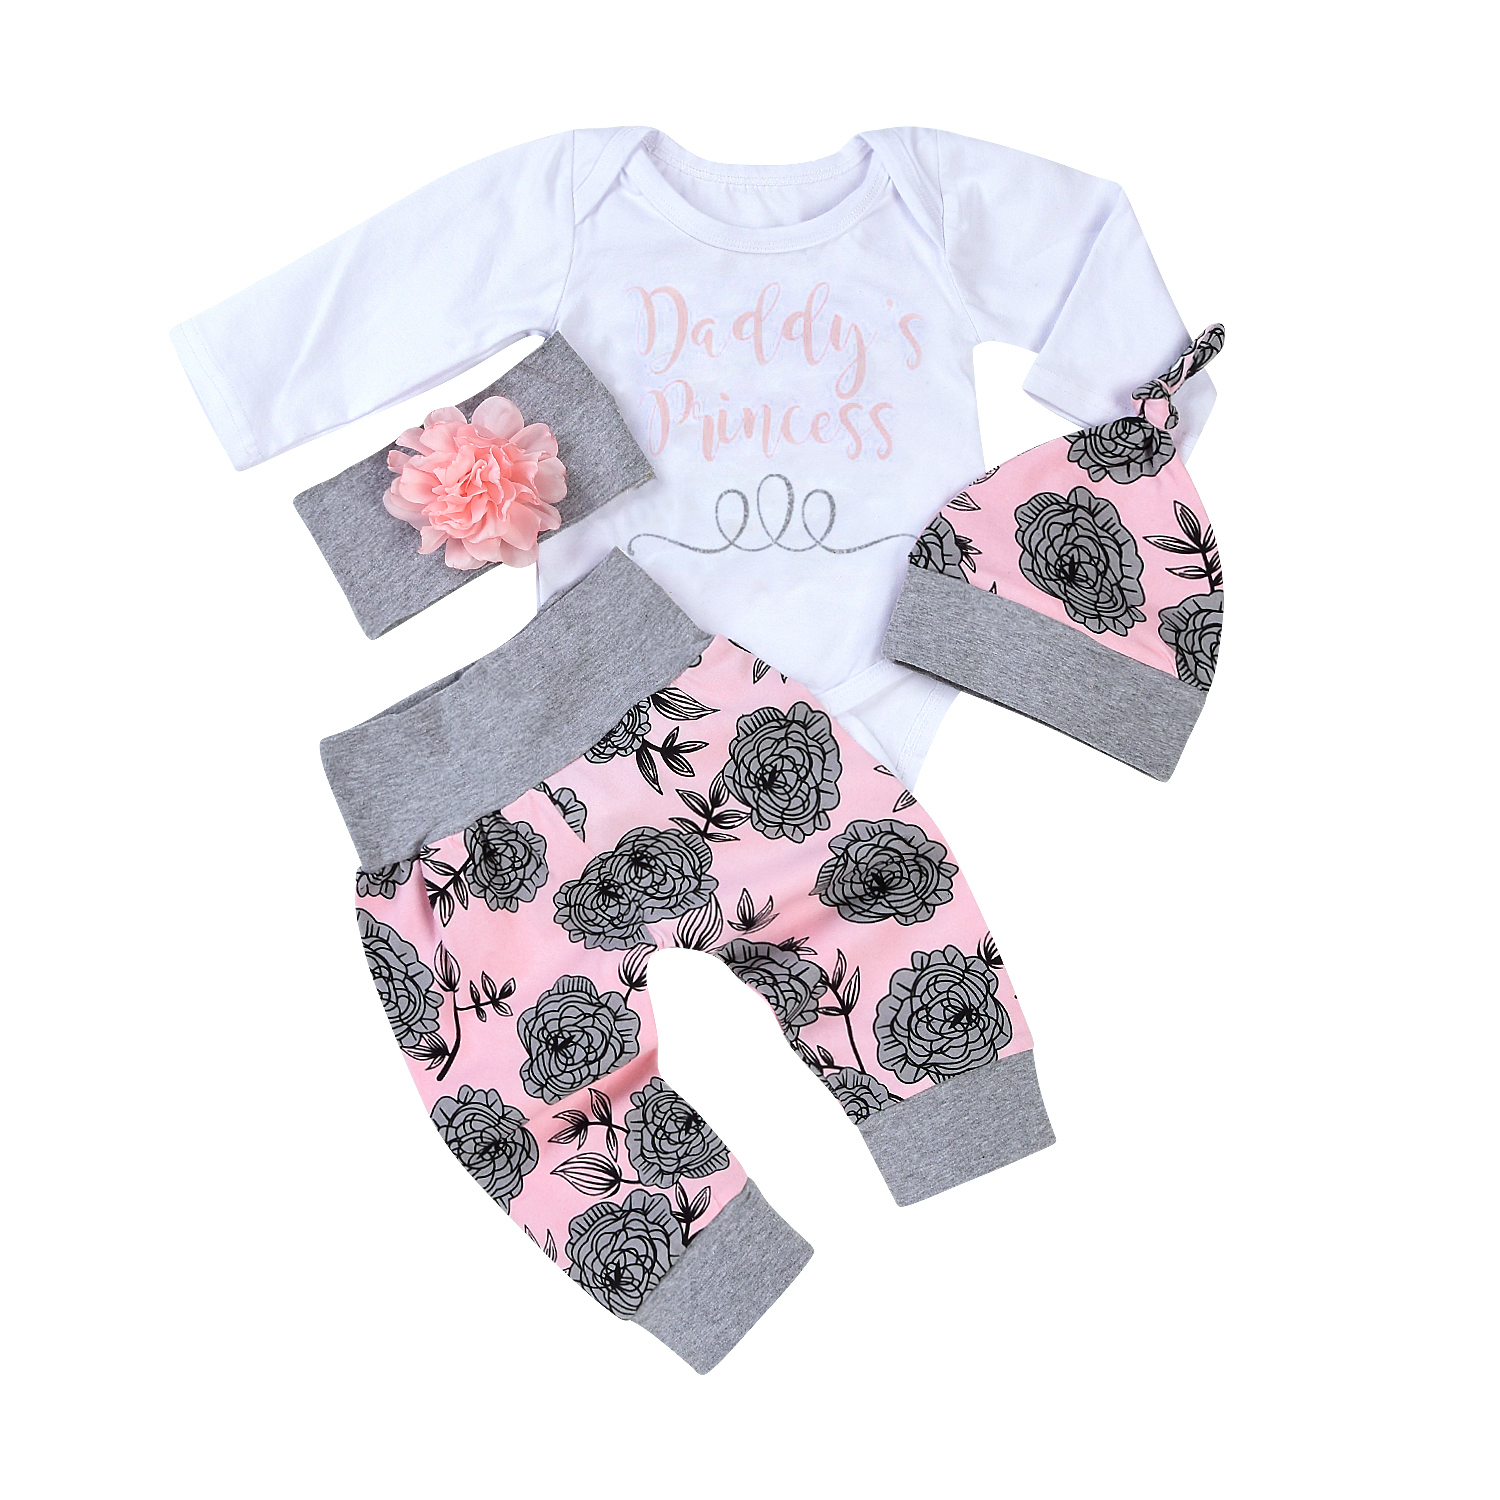 Newborn 4Pcs Baby Girl Clothes Set Autumn Fashion printing Infantil Cotton Baby Clothing Set Baby Romper+Pants+hat+Headband